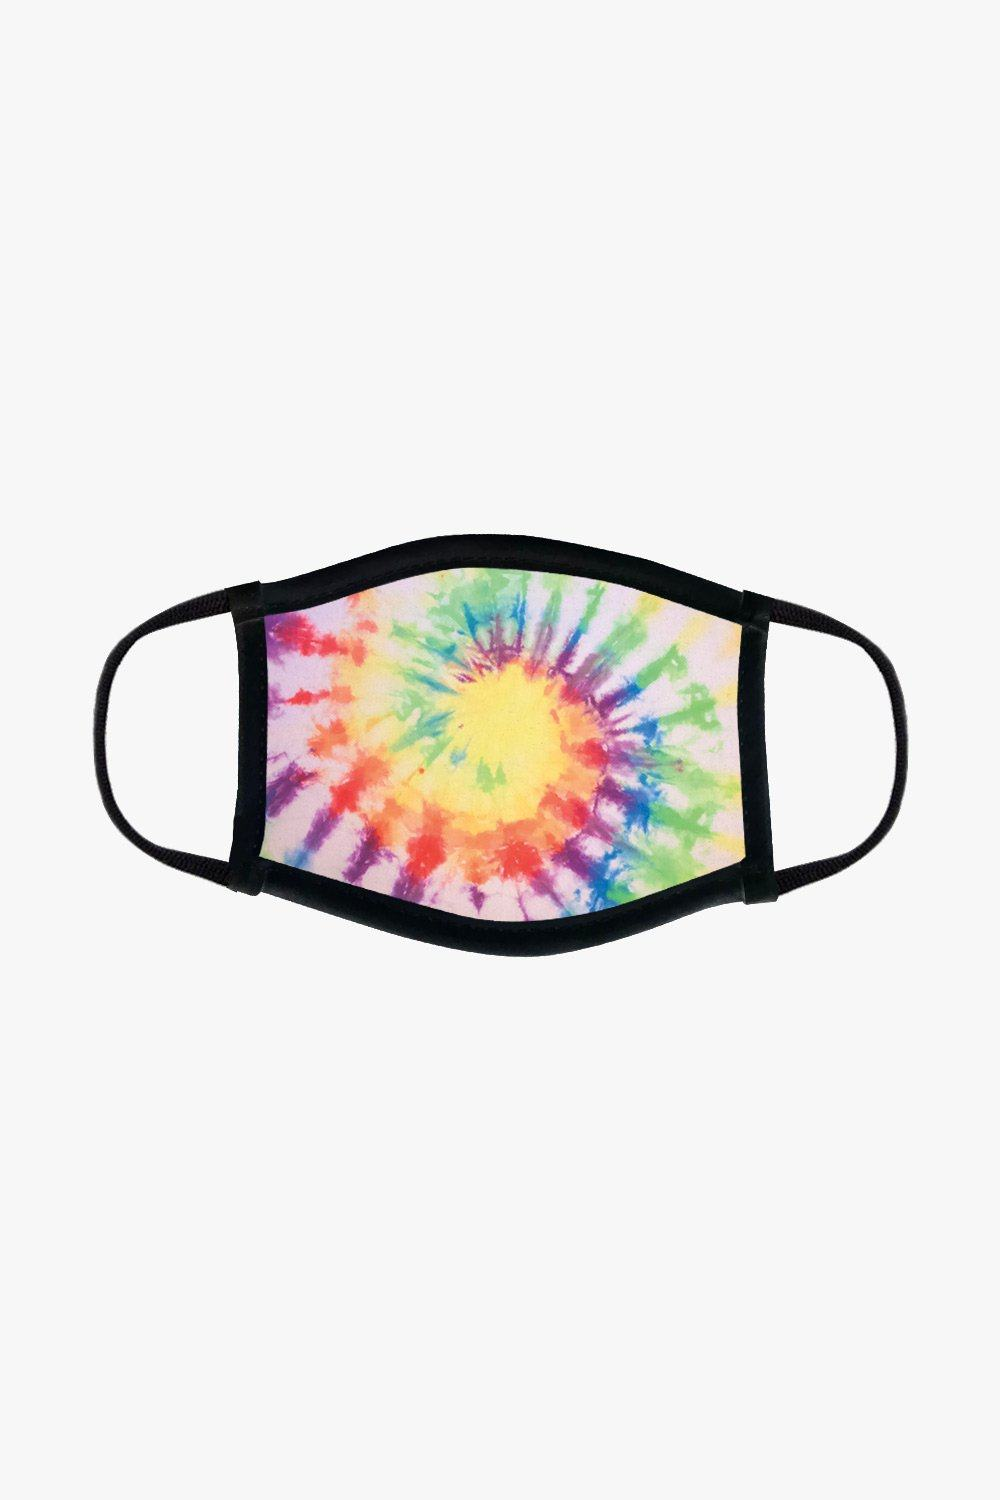 Reusable Fabric Face Mask - Tie Dye Jack + Mulligan